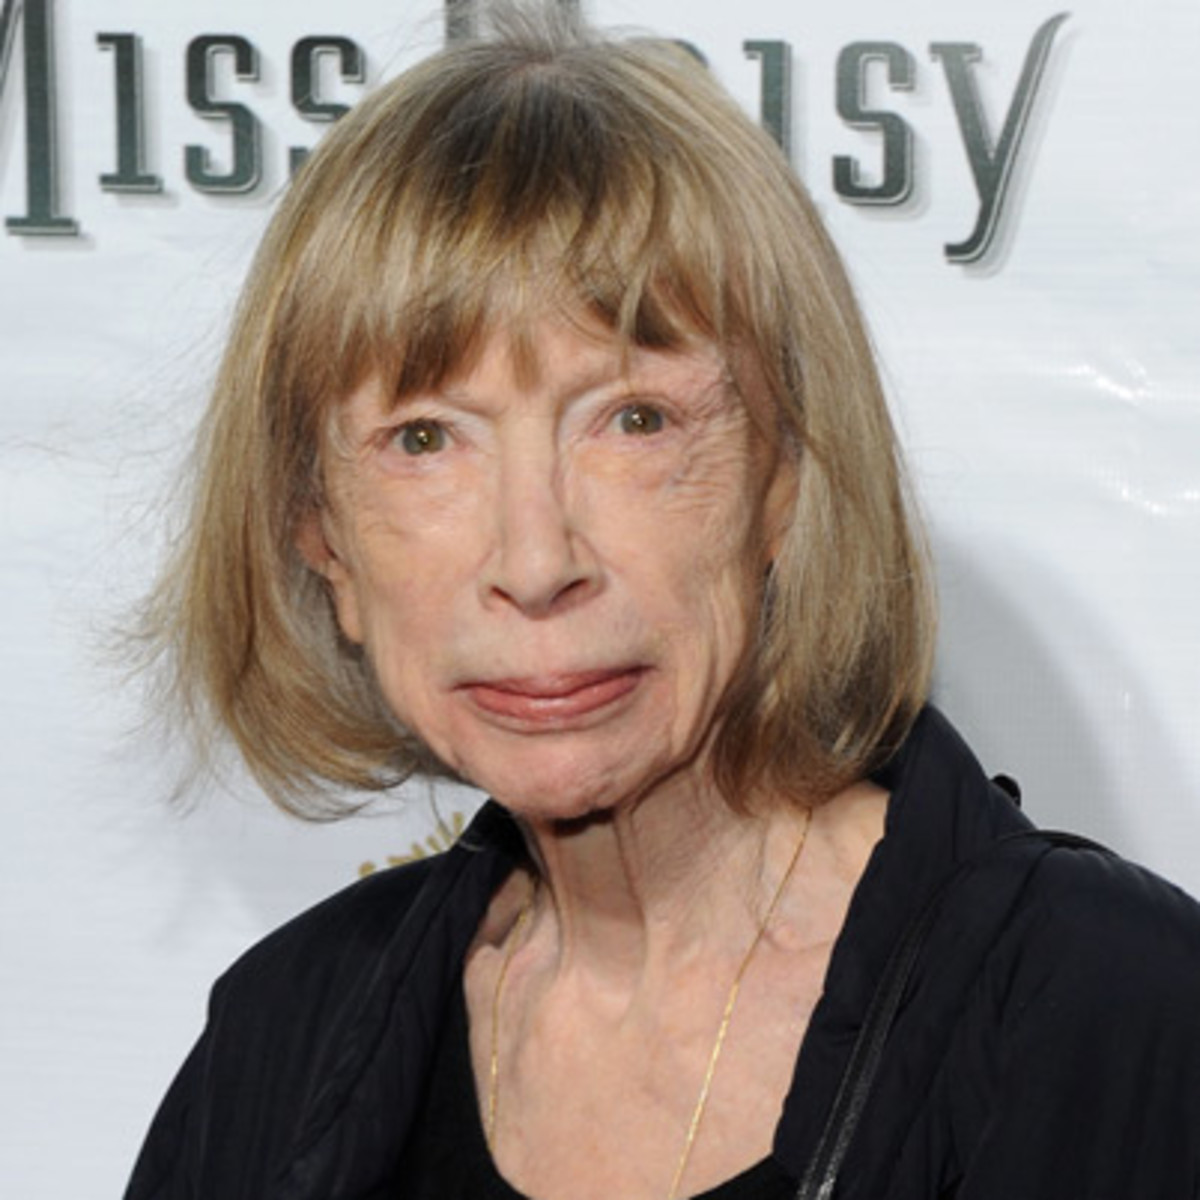 joan didion s tone in her essay on keeping a notebook is explanatory and a little sarcastic Browse through critical essays on thousands of literary works to find resources for school projects and papers.